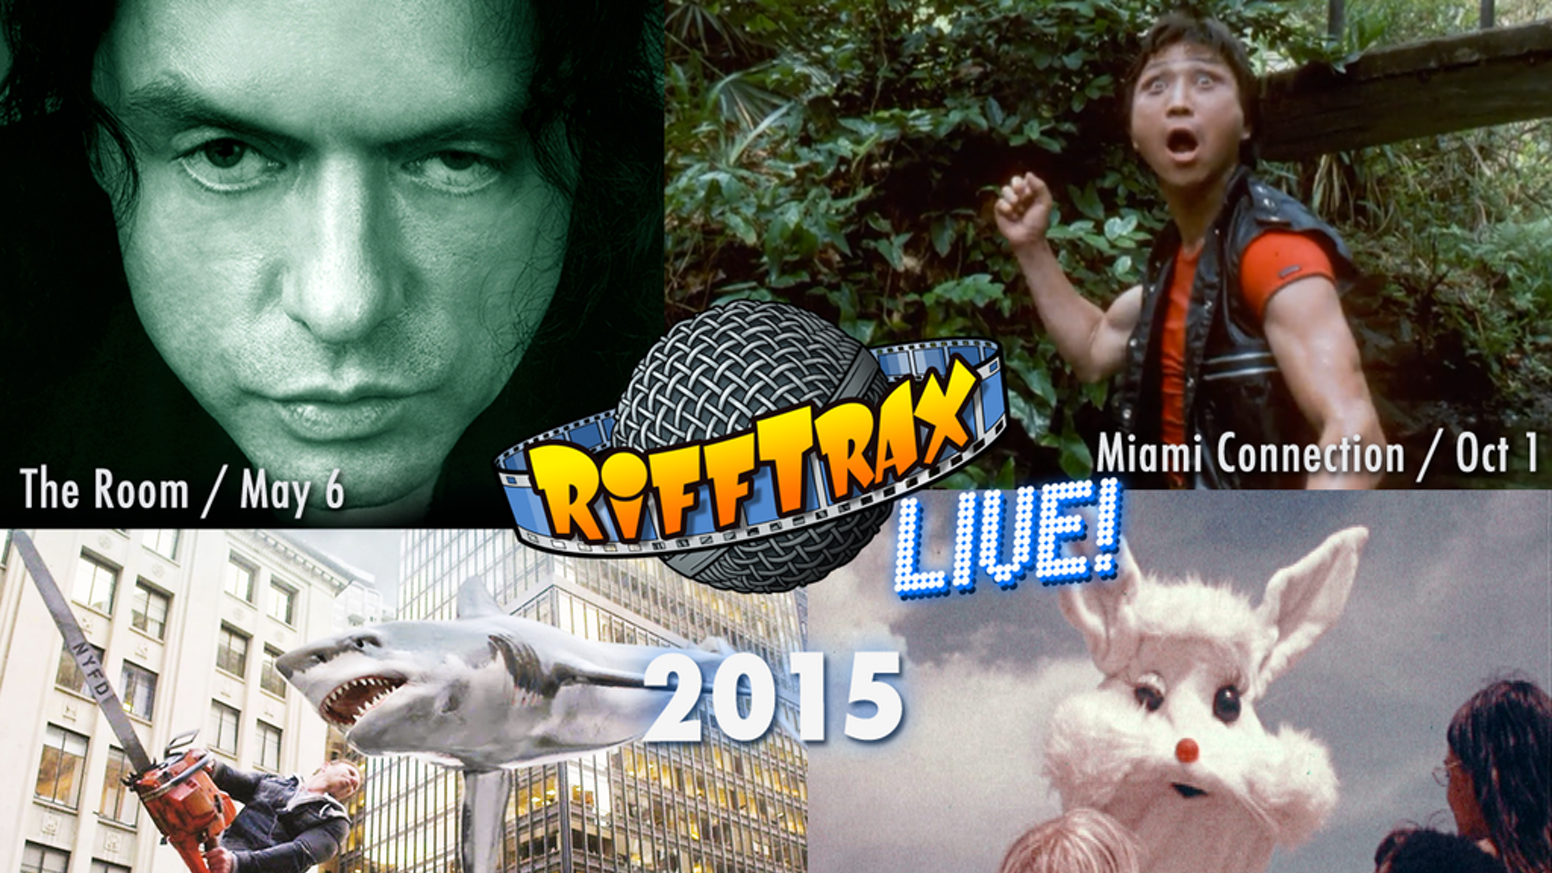 The MST3K guys are roasting THE ROOM, SHARKNADO 2, MIAMI CONNECTION + SANTA & THE ICE CREAM BUNNY for LIVE SHOWS in 700+ Movie Theaters